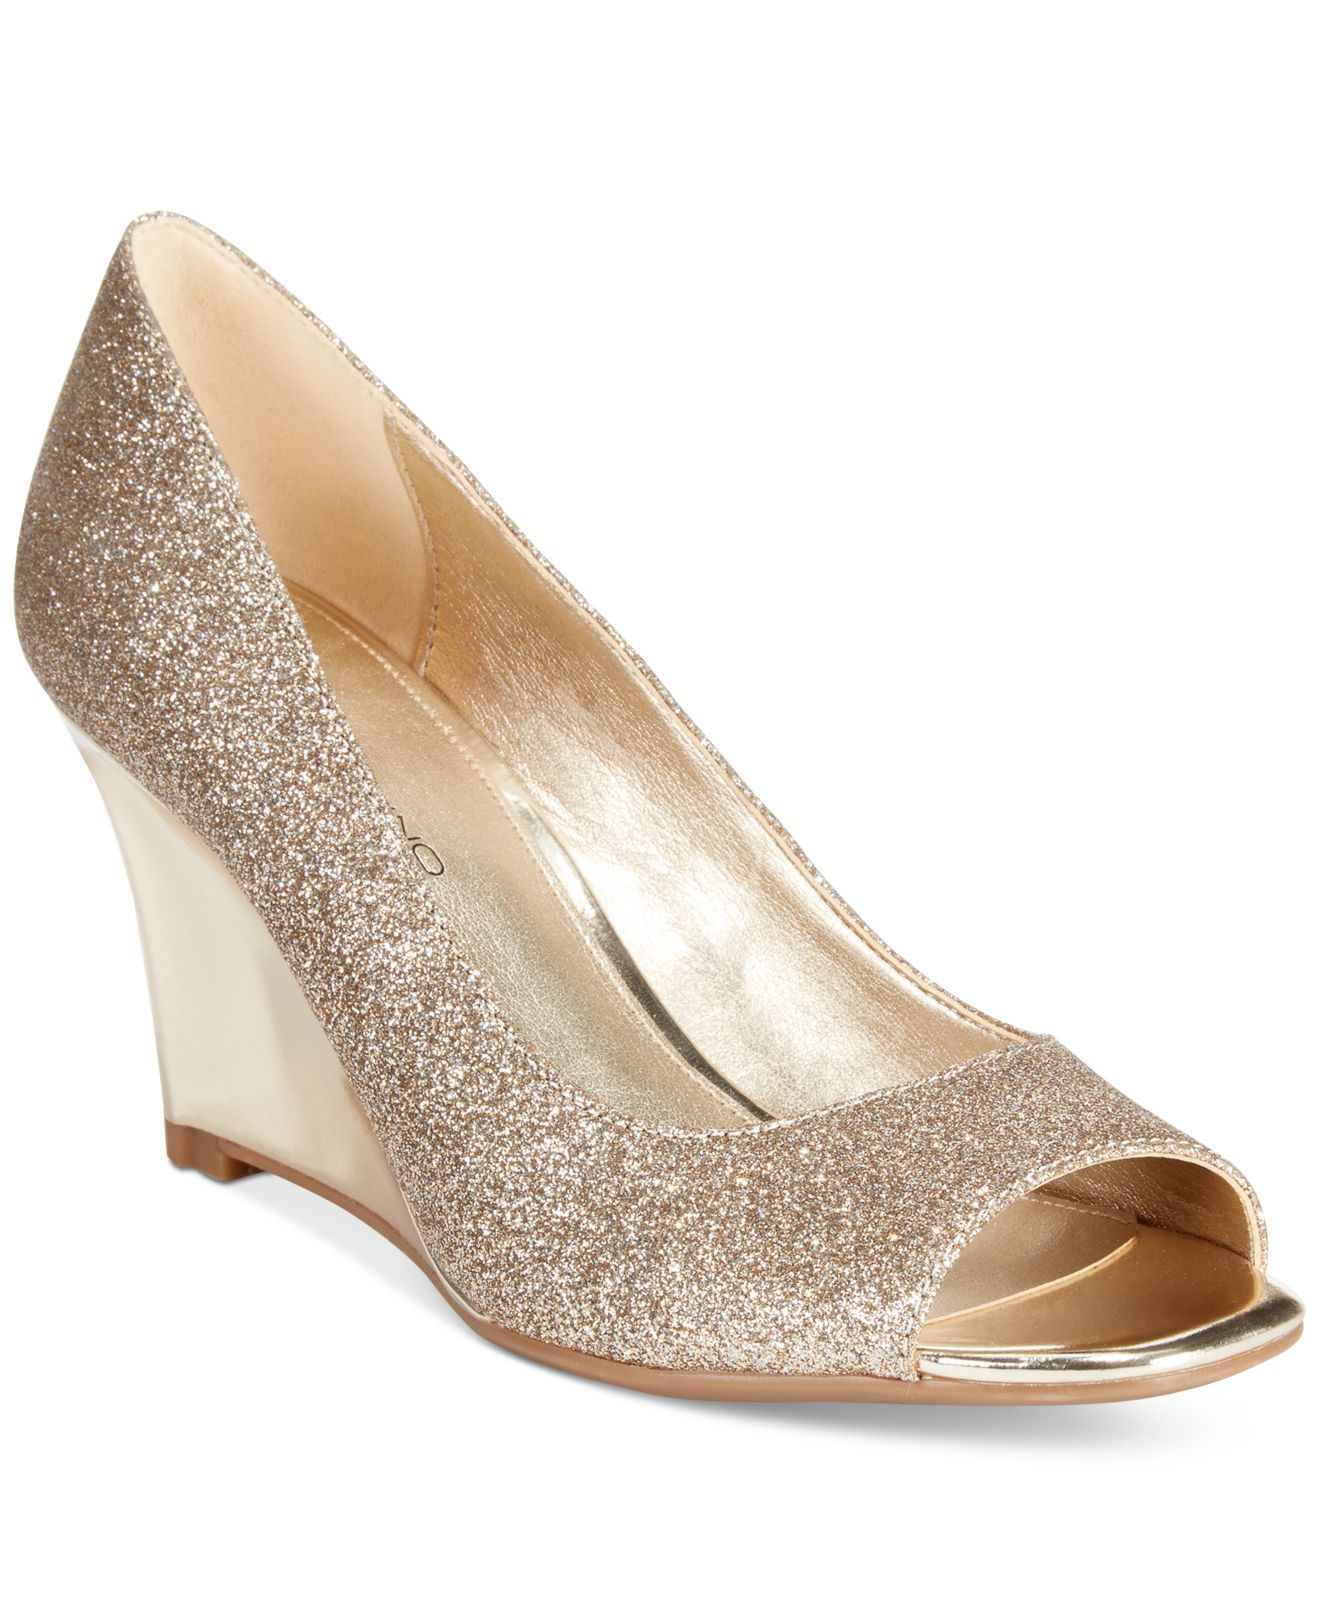 The largest selection of women's shoes, from sandals to heels, casual to formal.